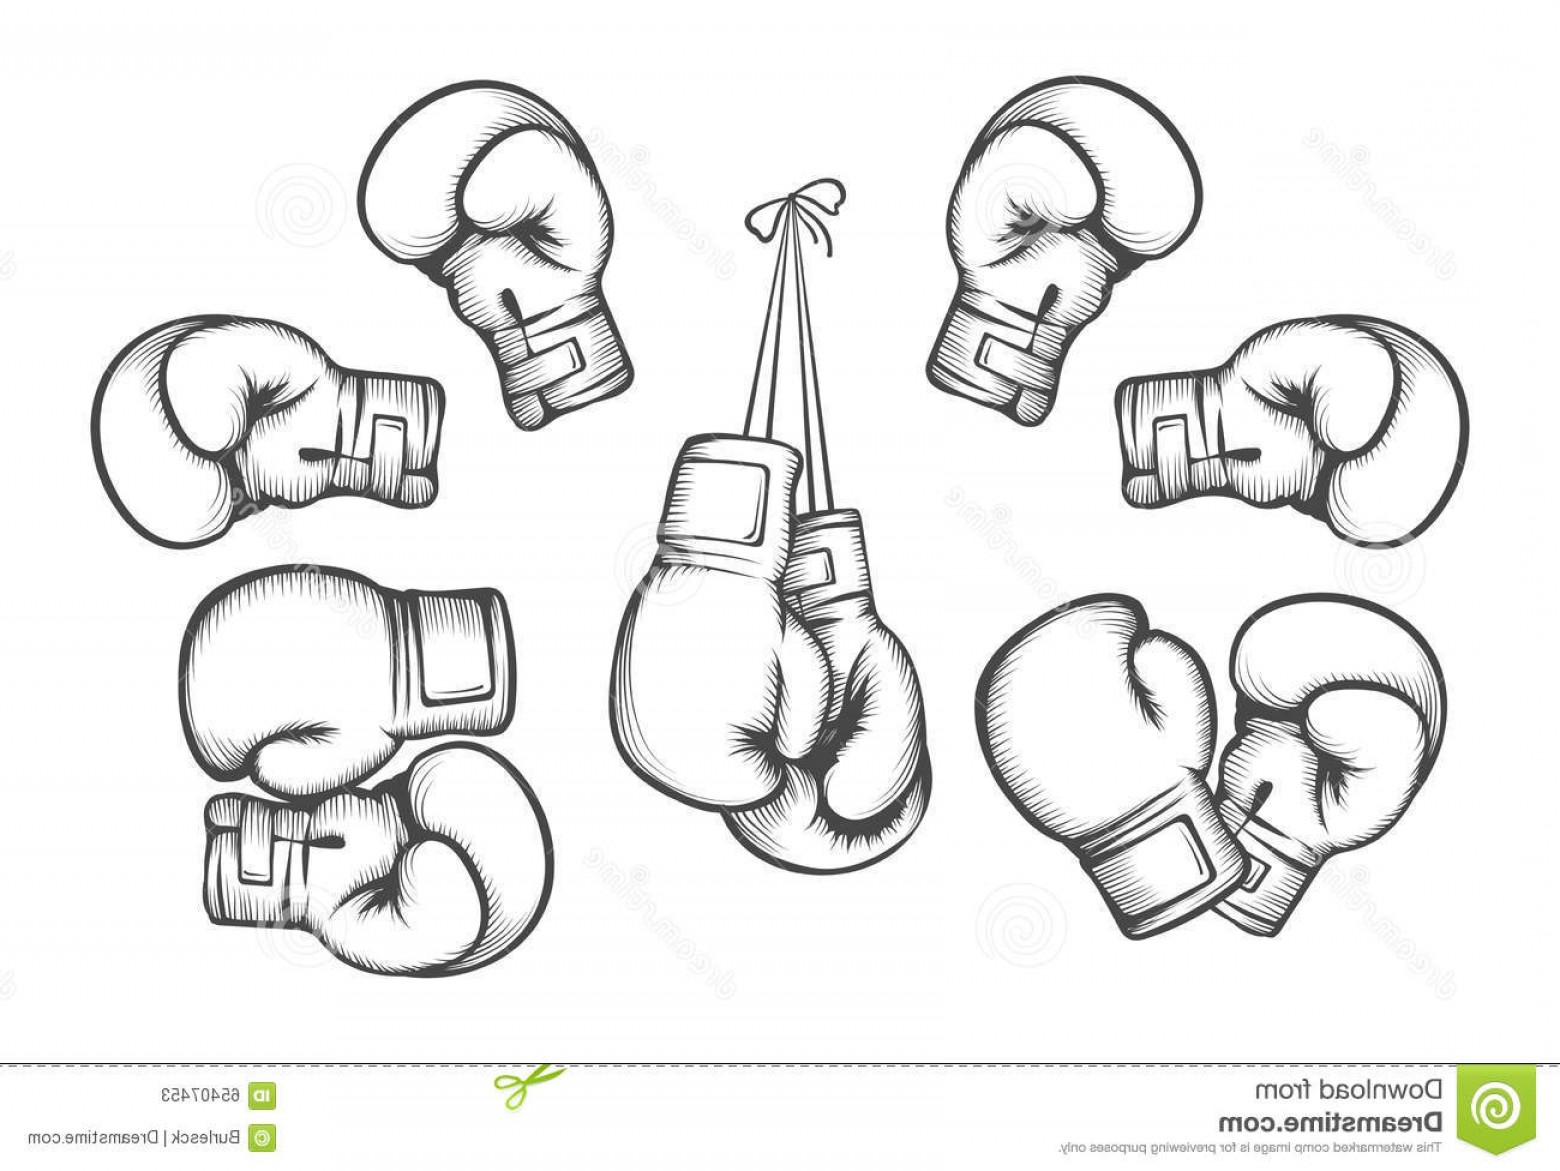 Pictures Of Boxing Gloves Vector Art: Stock Illustration Boxing Gloves Vector Equipment Fight Competition Hanging Protection Hand Illustration Image